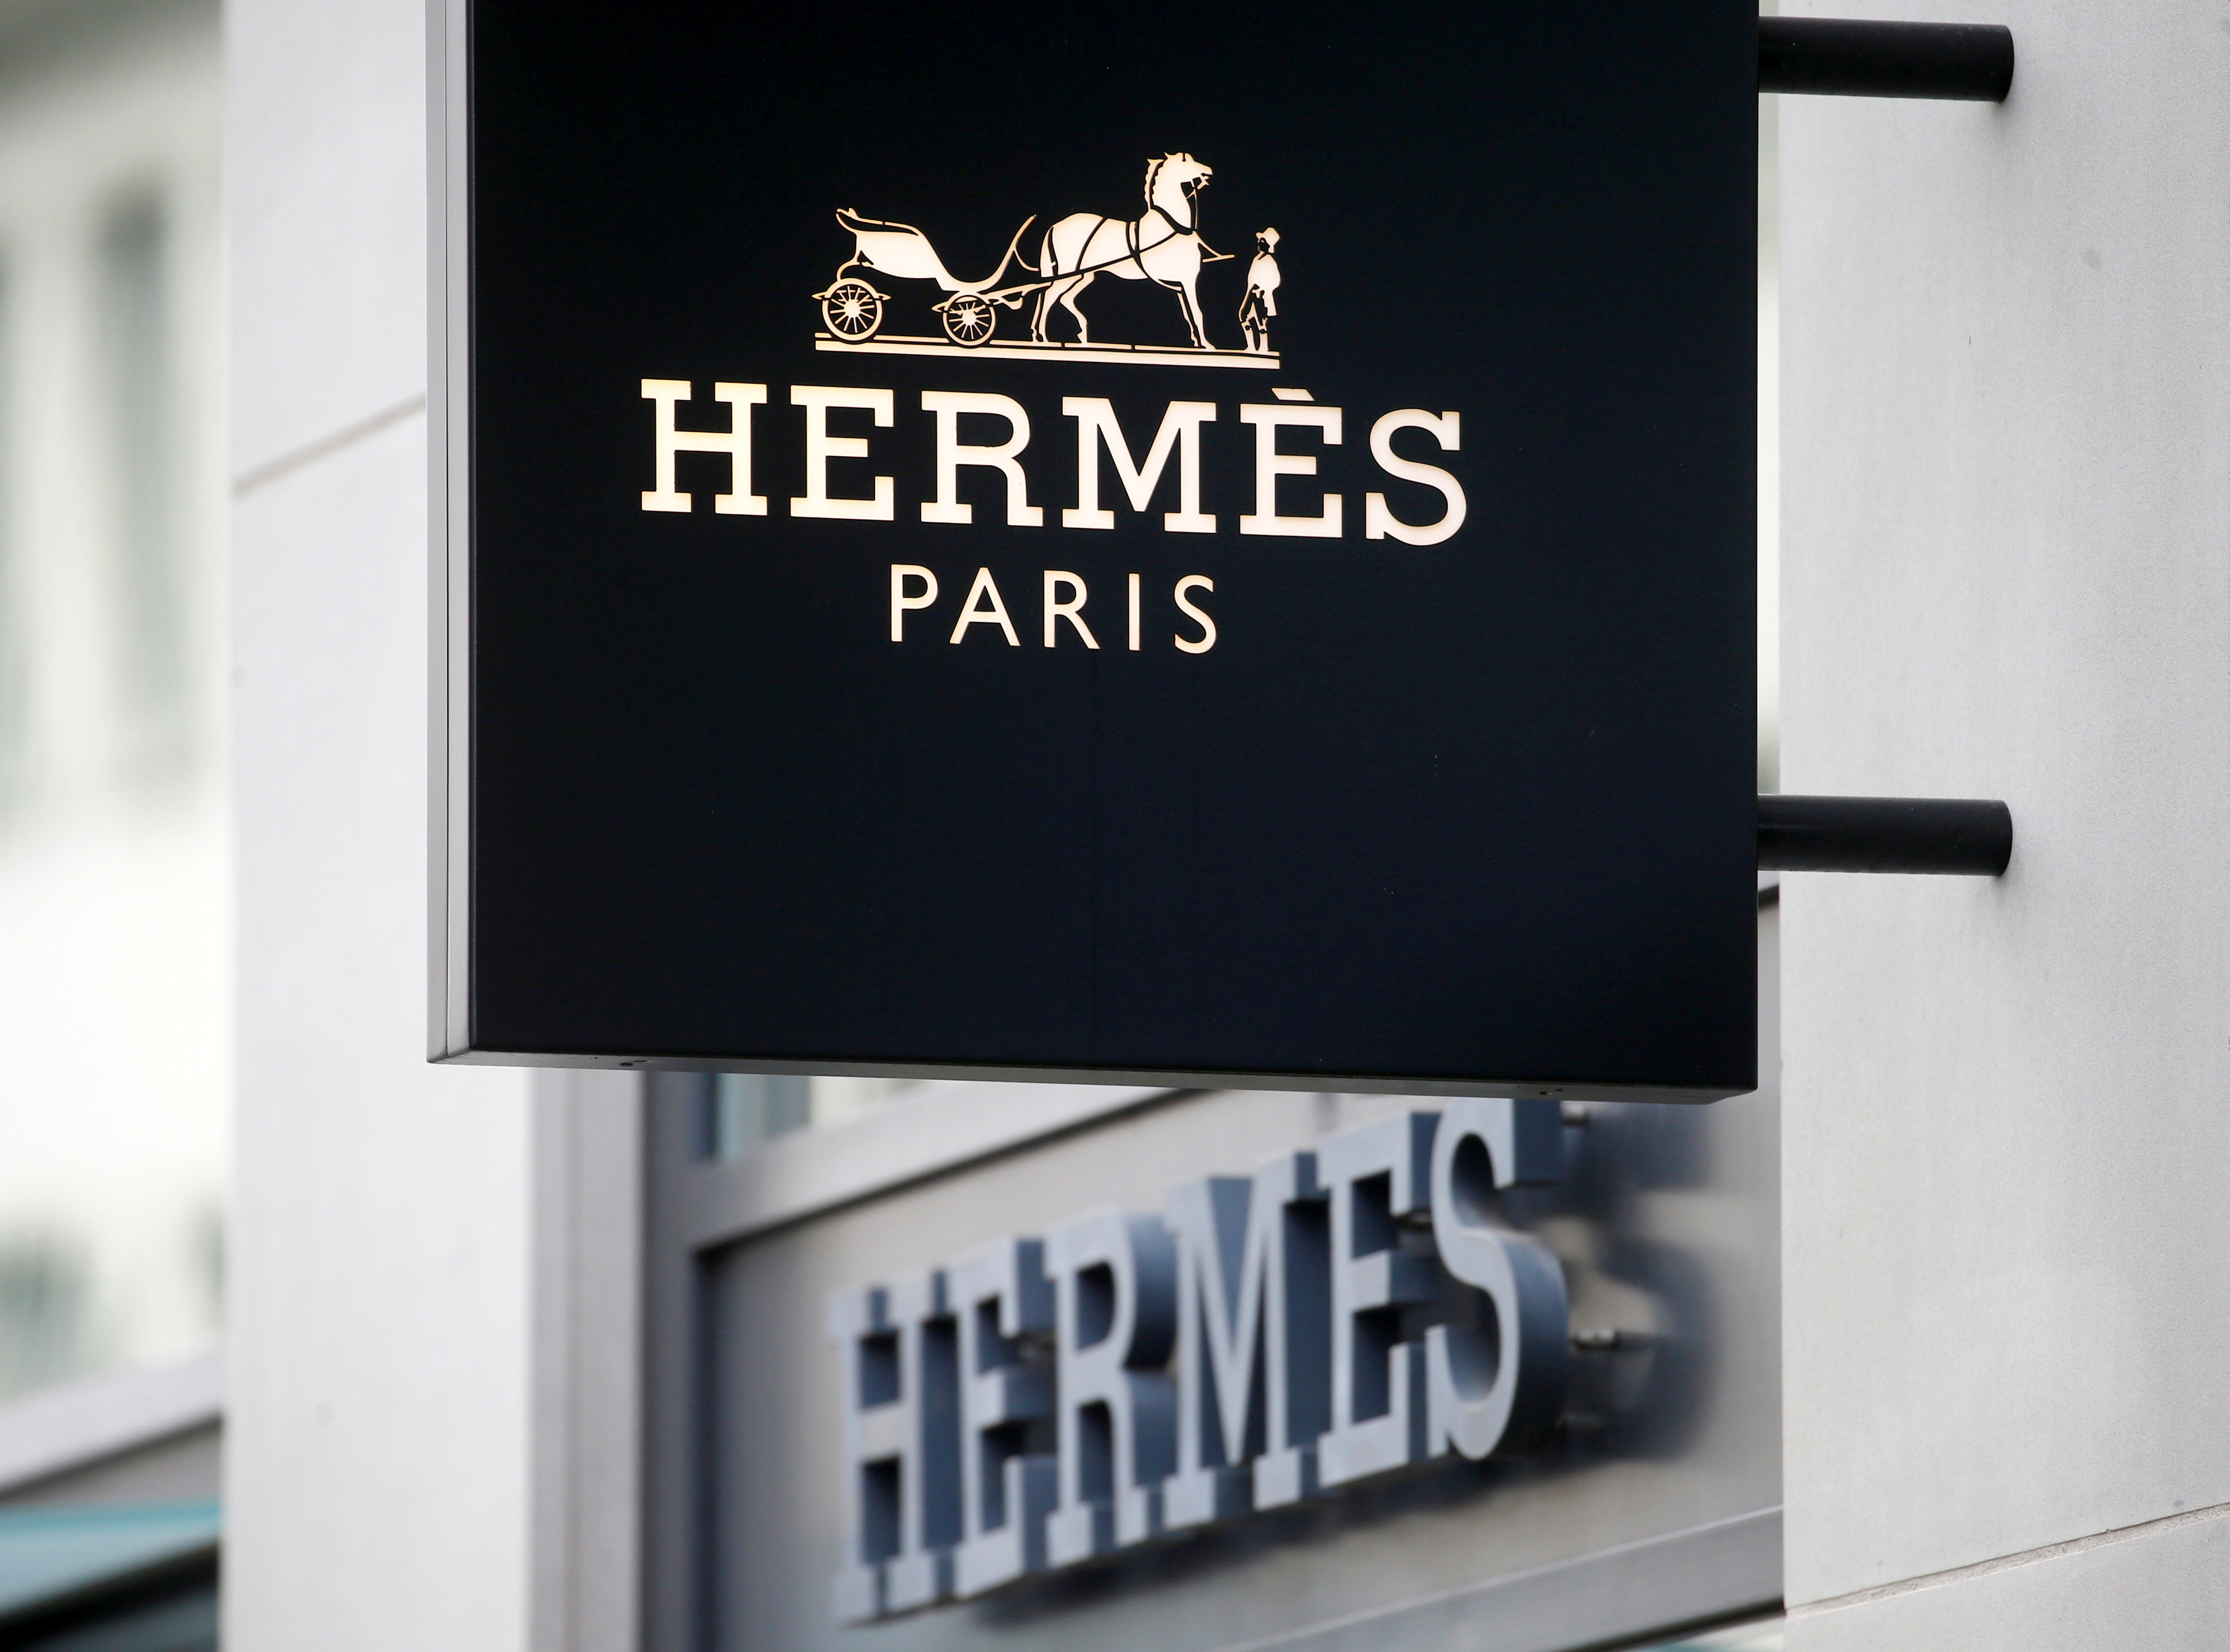 The logo of French luxury group Hermes is seen at a store, as the spread of the coronavirus disease (COVID-19) continues, in Zurich, Switzerland February 17, 2021. REUTERS/Arnd Wiegmann